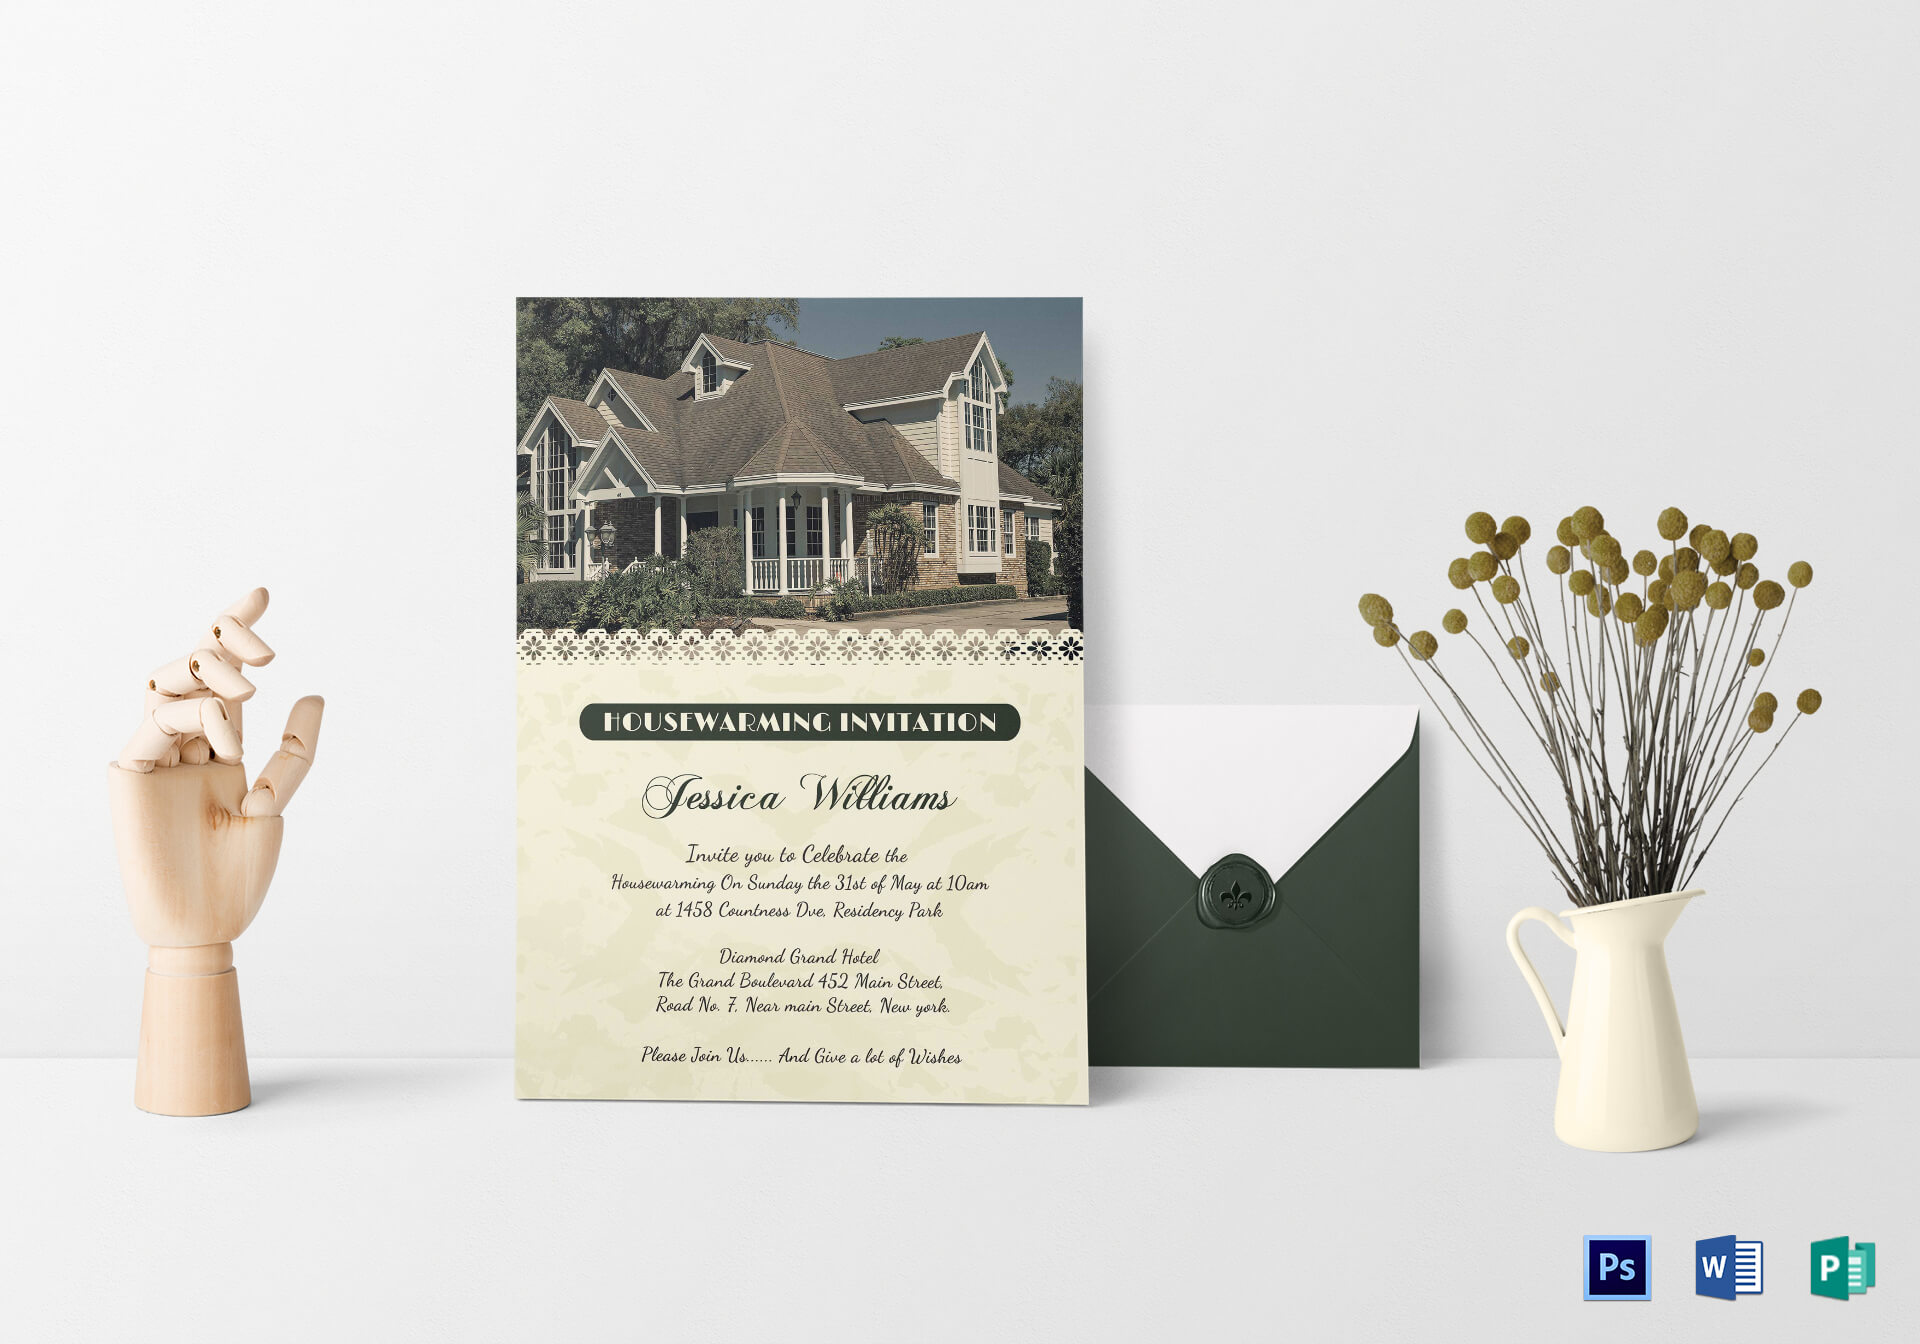 Welcoming Housewarming Invitation Card Template with regard to Free Housewarming Invitation Card Template